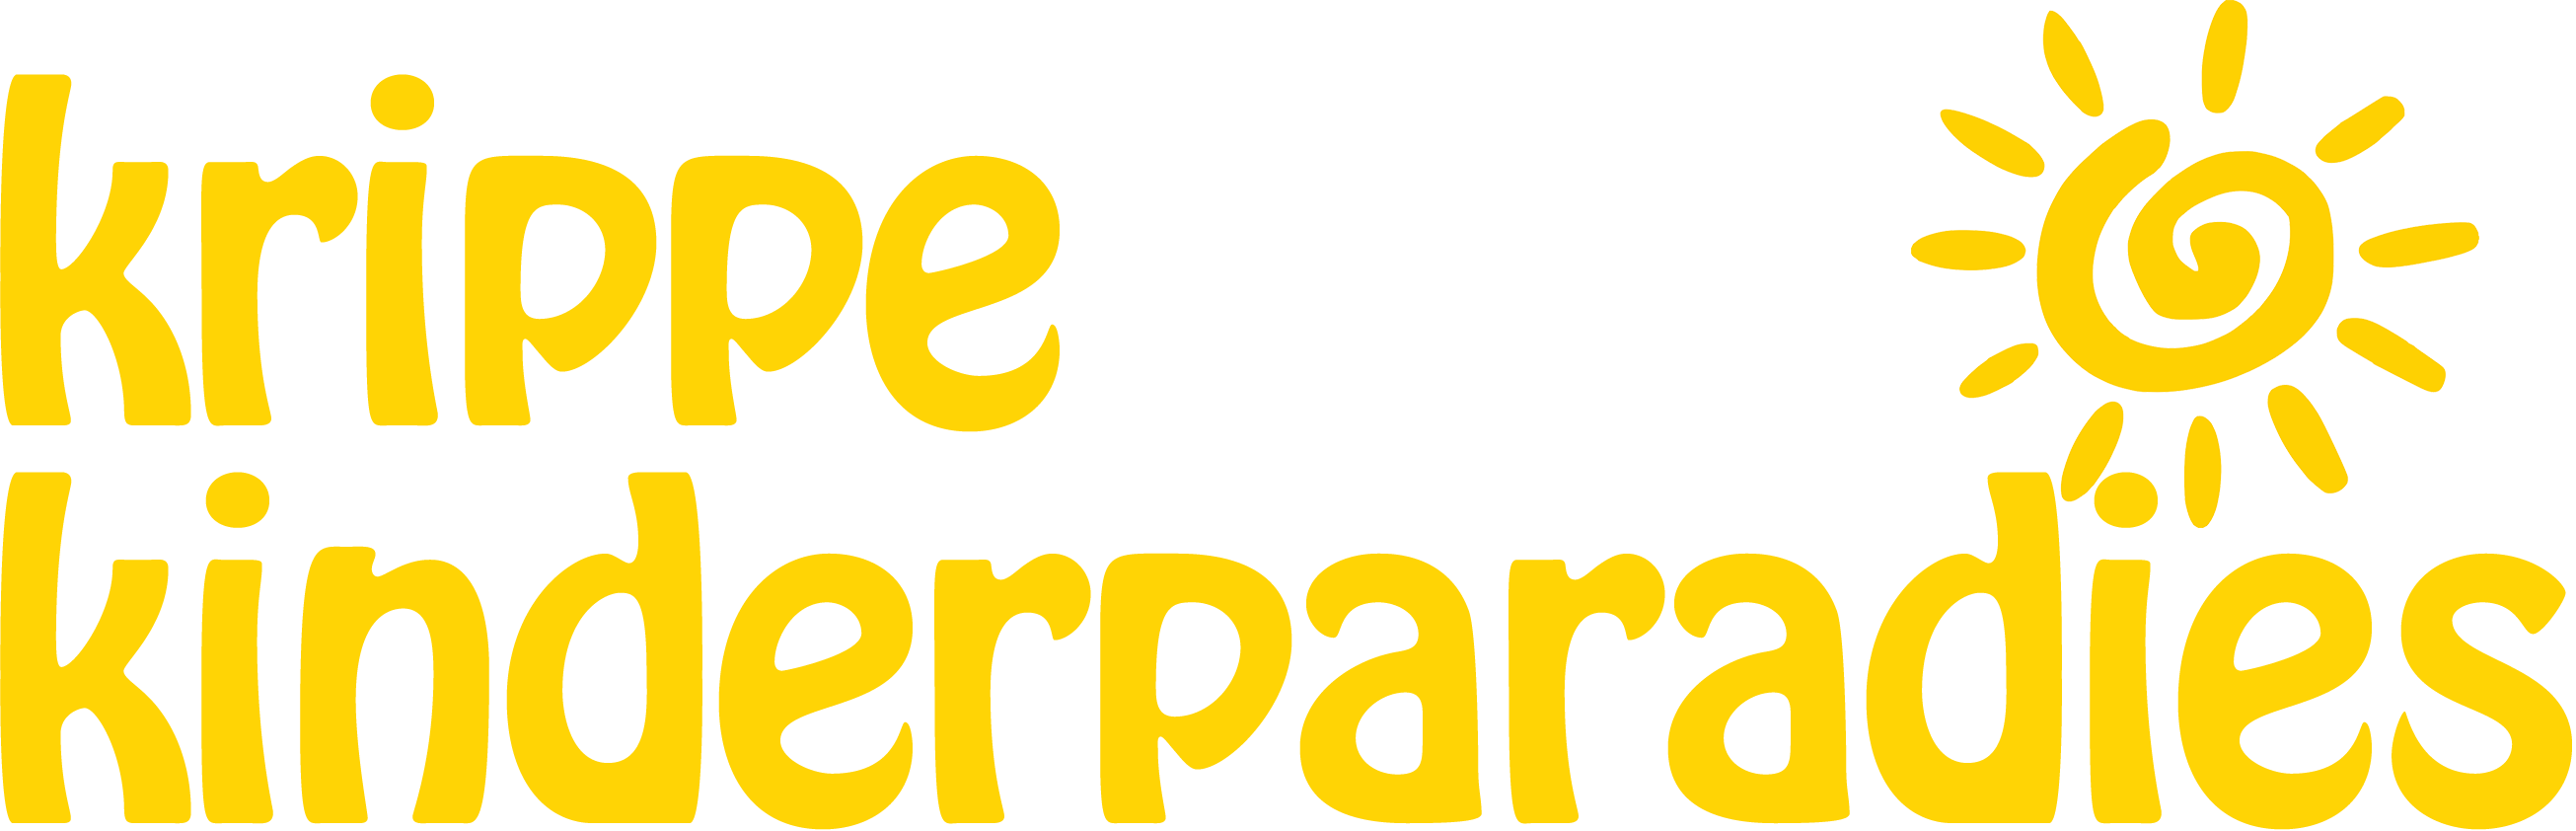 Krippen Kinderparadies GmbH